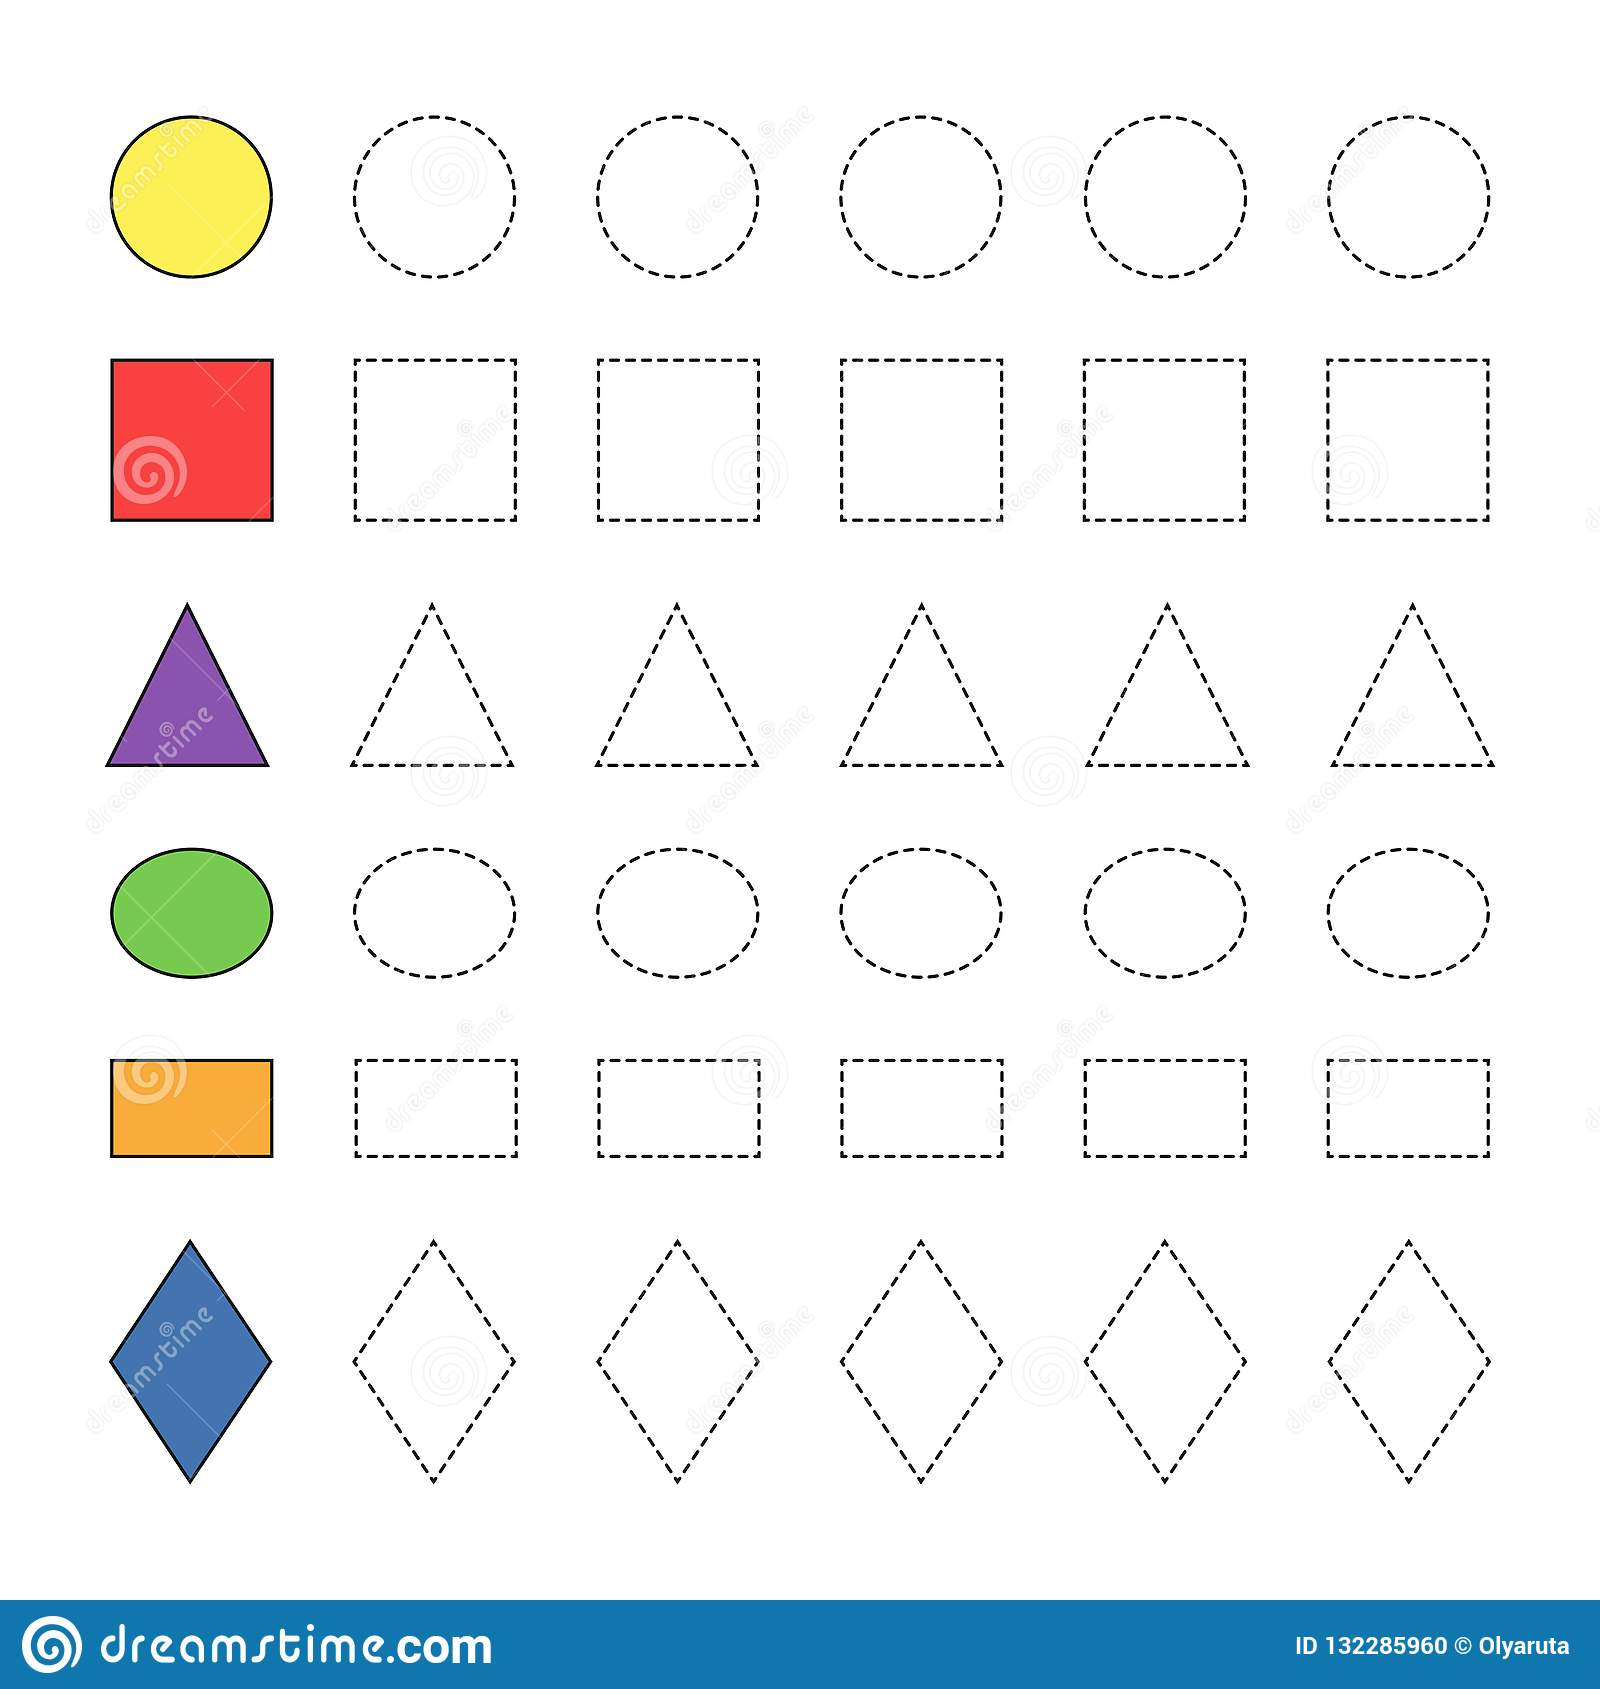 Simple Educational Game With Different Geometric Figures